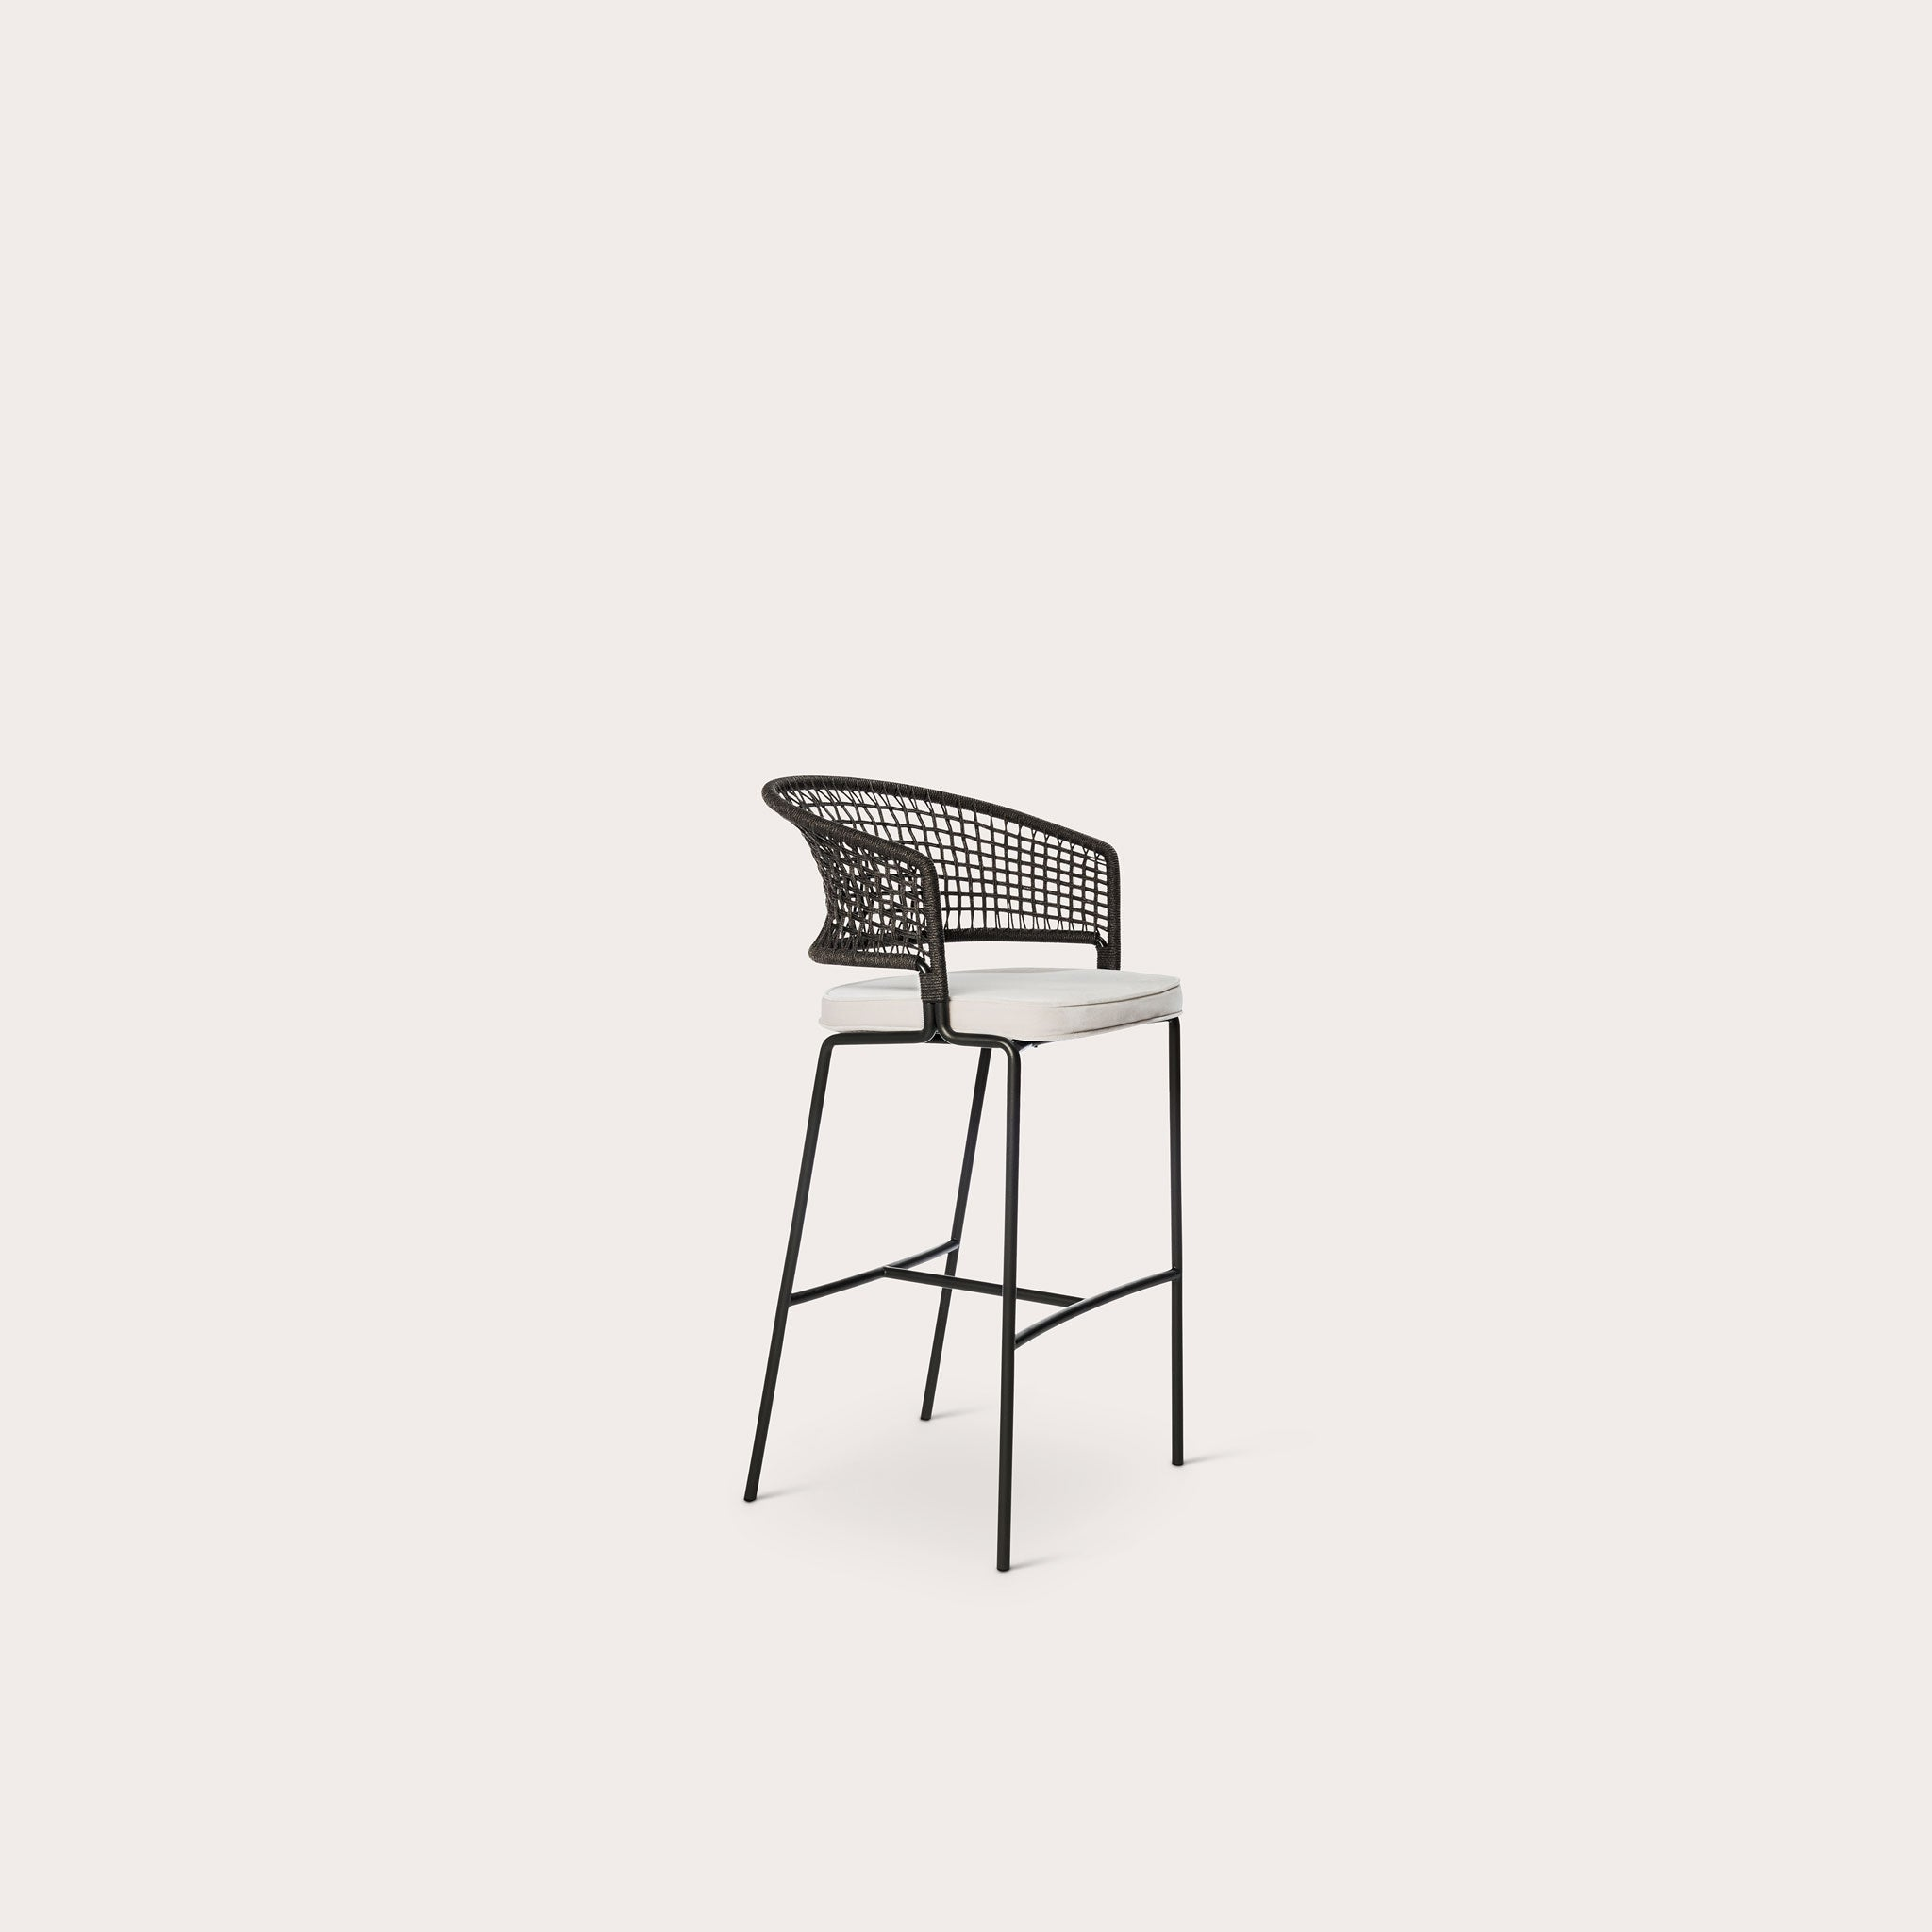 CTR Bar Chair Outdoor Piergiorgio Cazzaniga Designer Furniture Sku: 007-200-11392